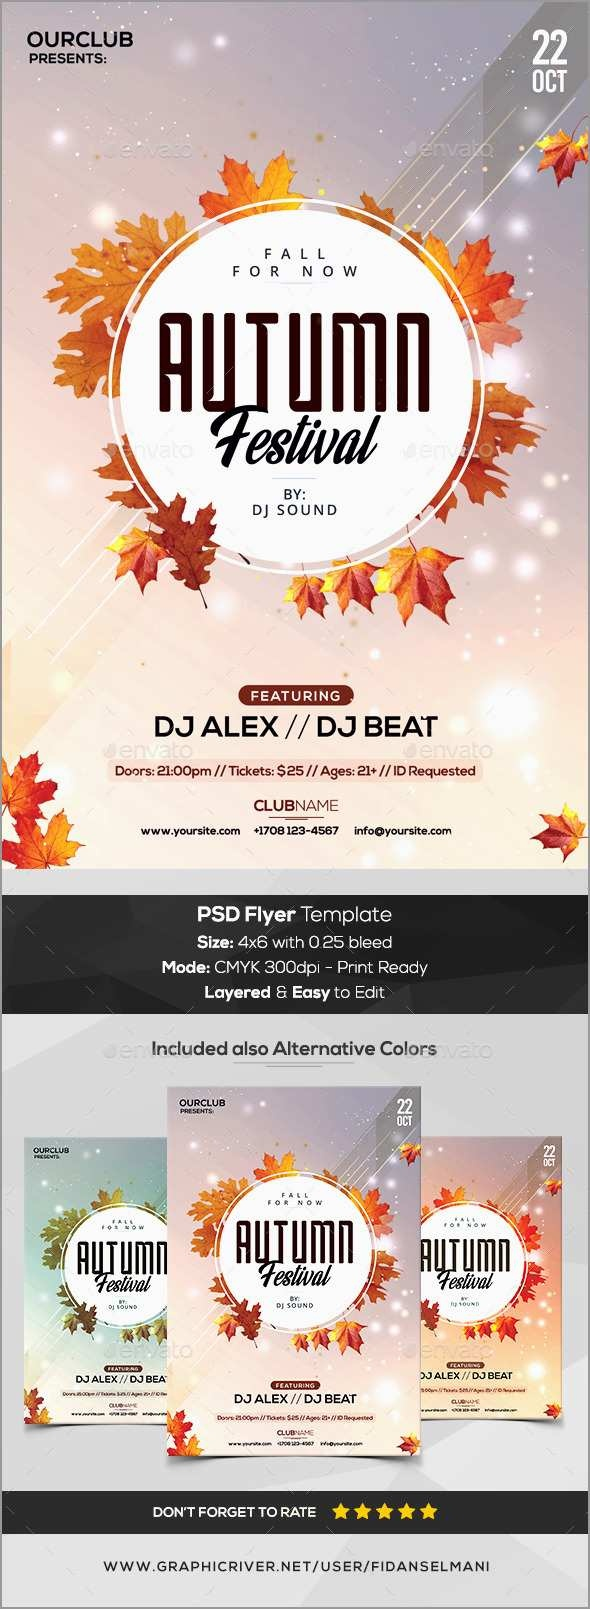 Unique Free Printable Fall Flyer Templates   Best Of Template - Free Printable Fall Flyer Templates